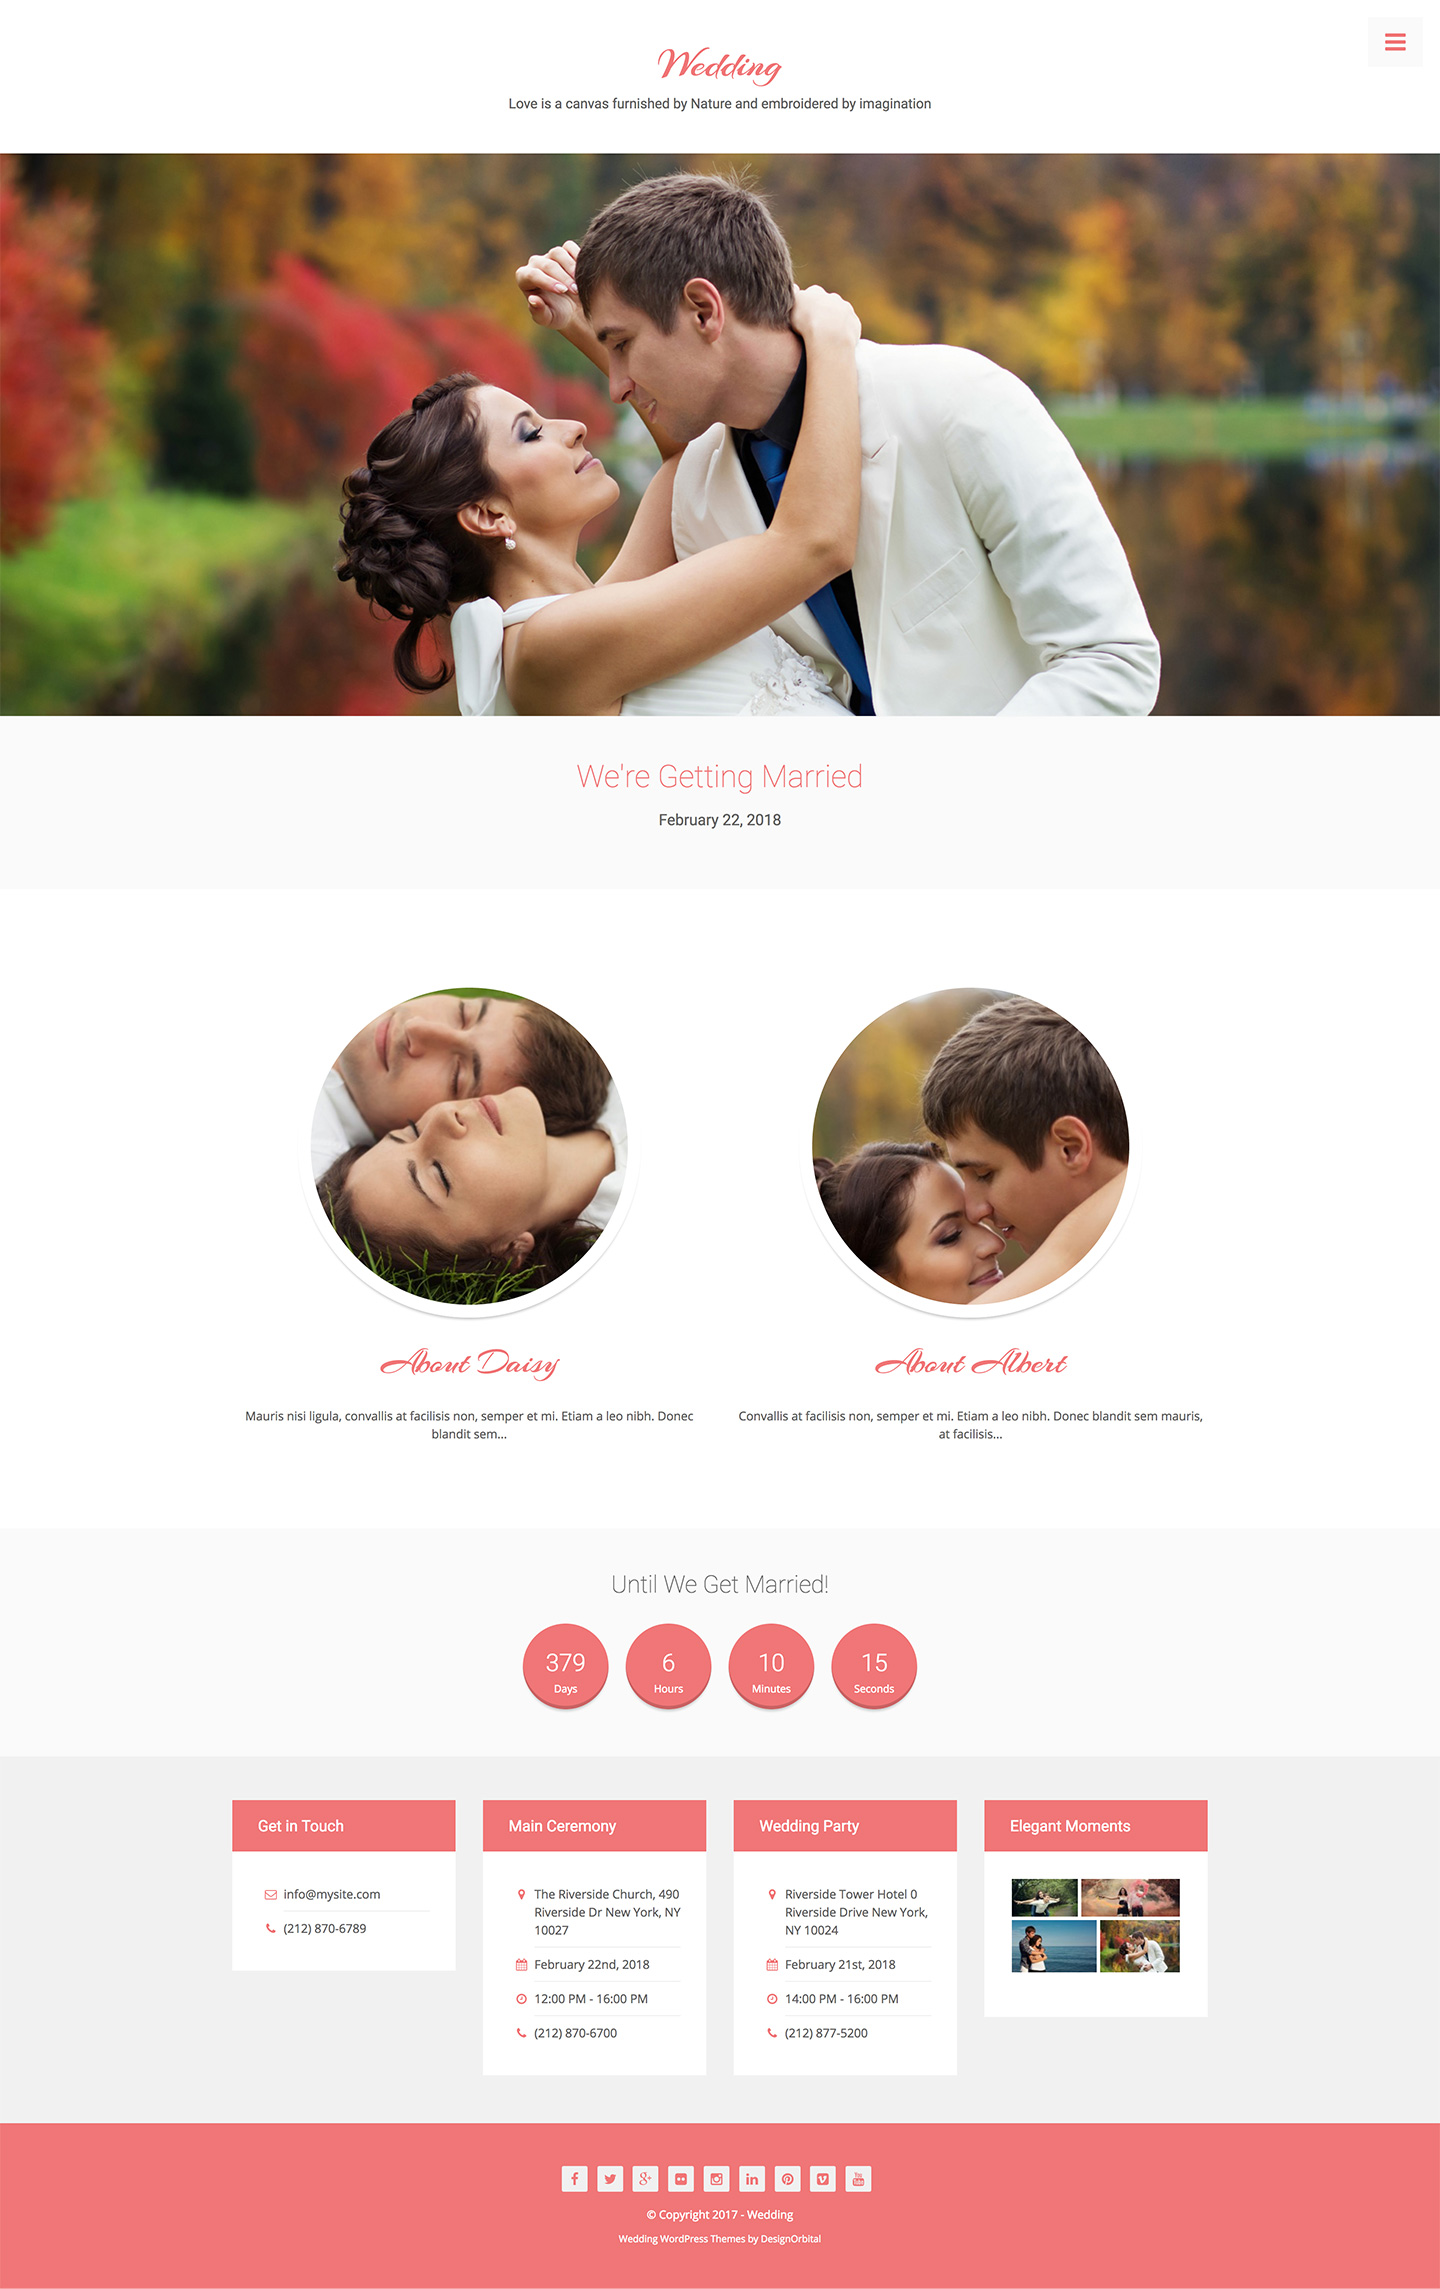 Wedding - Gorgeous Feminine Wordpress Theme - DesignOrbital